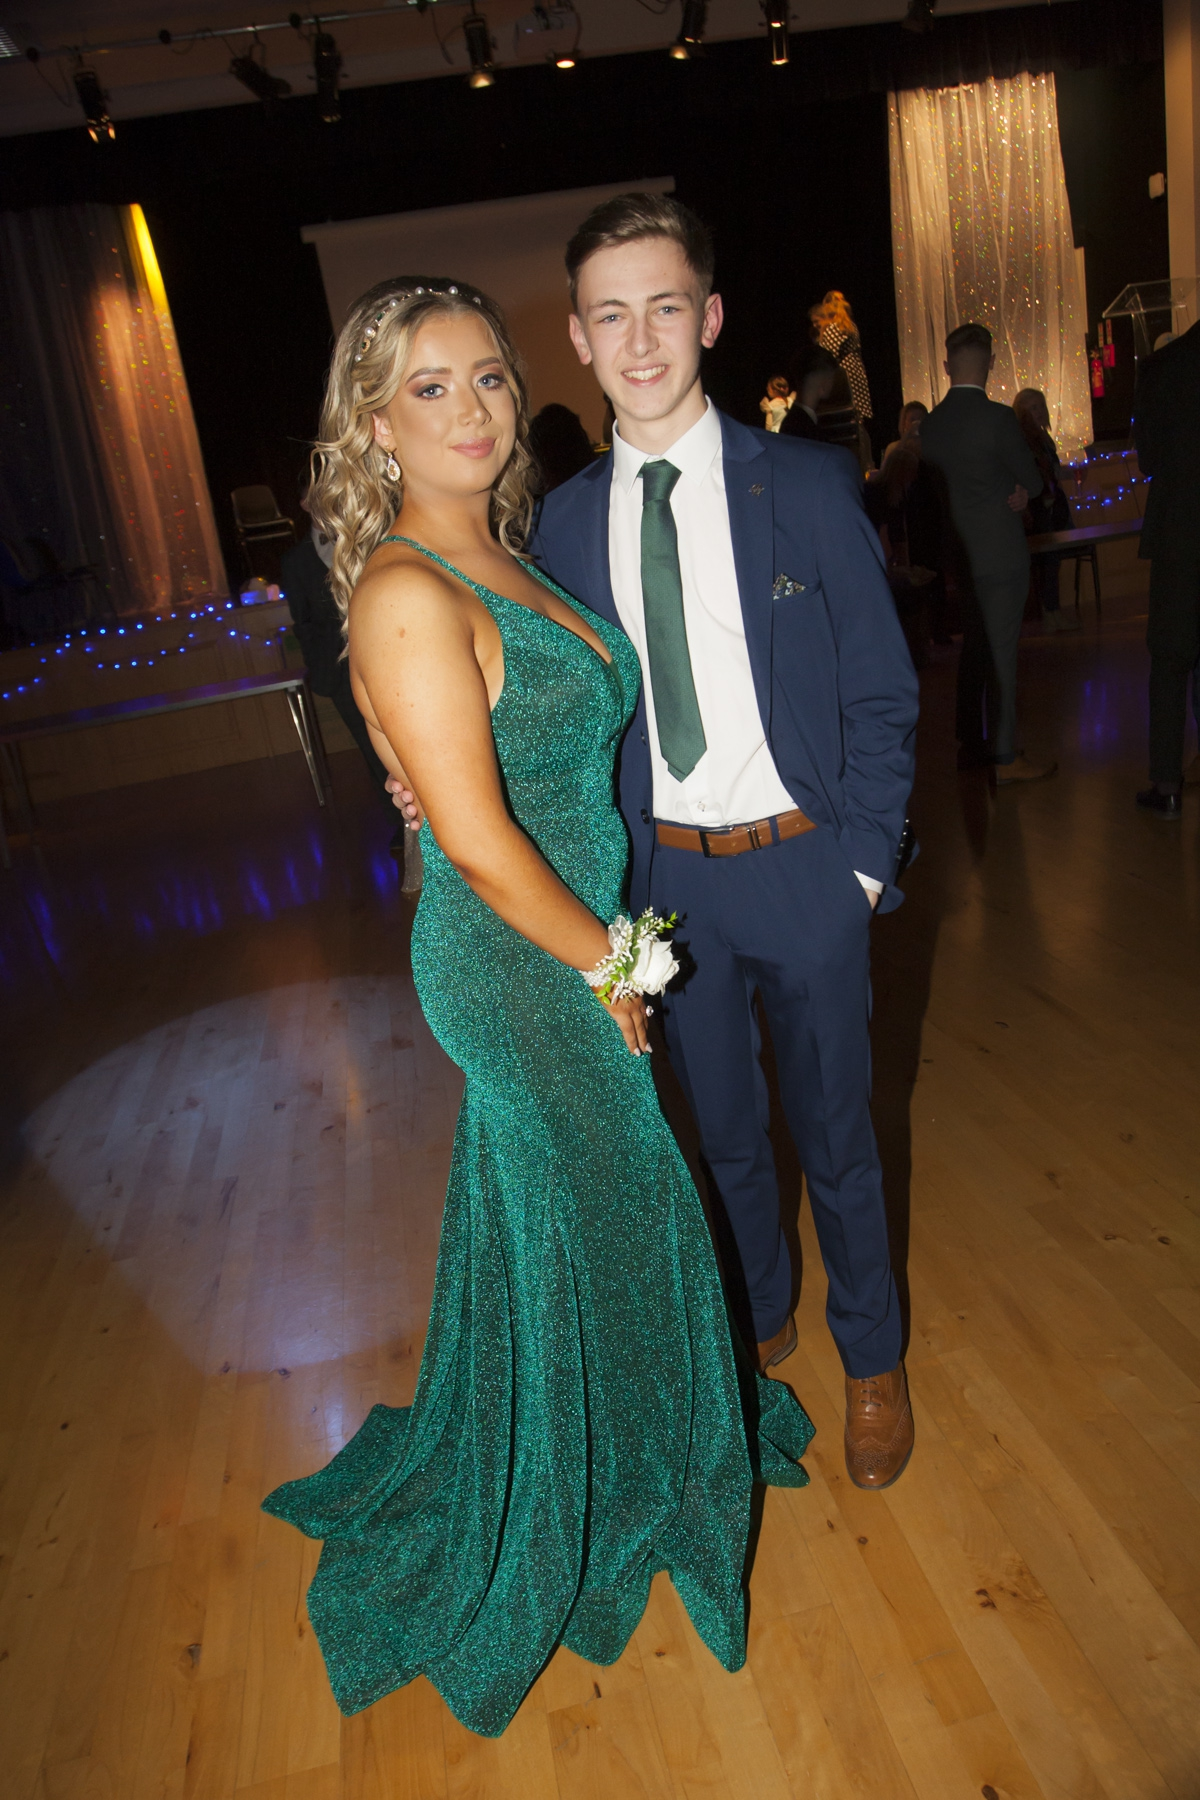 Hannah Feeney and Owen McGeehan pictured on Thursday night at the St. Mary's Formal.